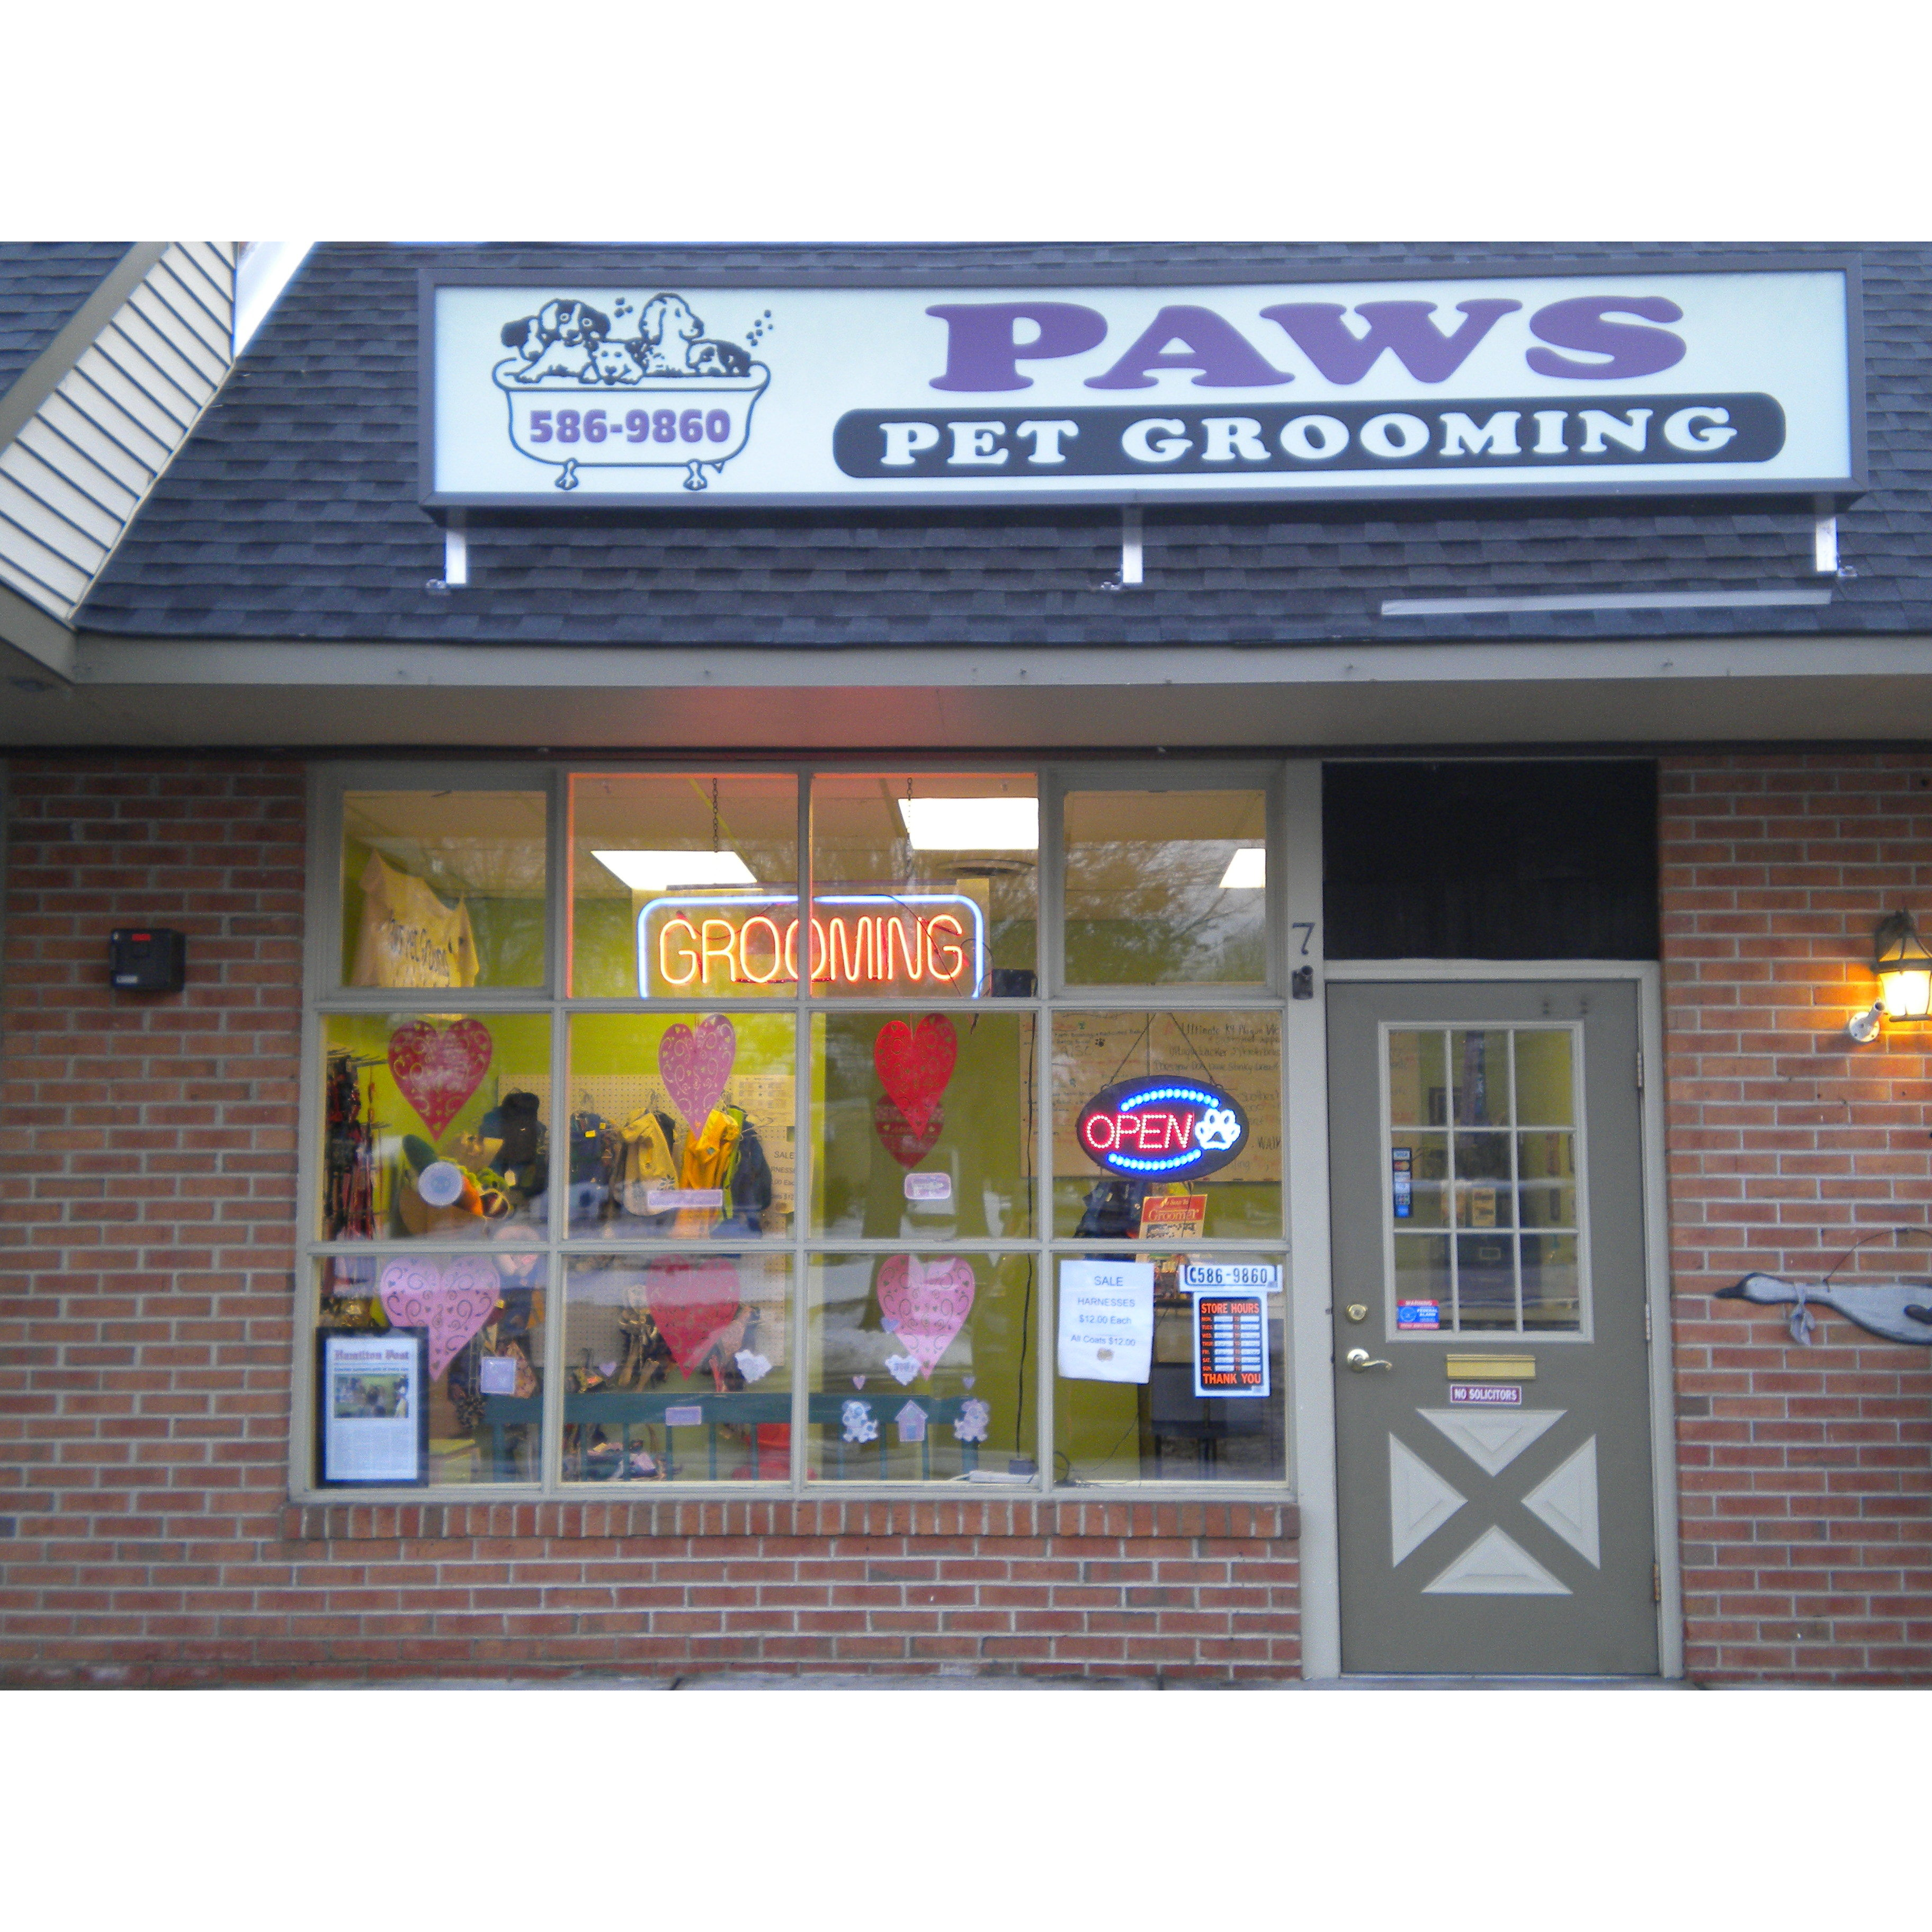 Paws Pet Groomers